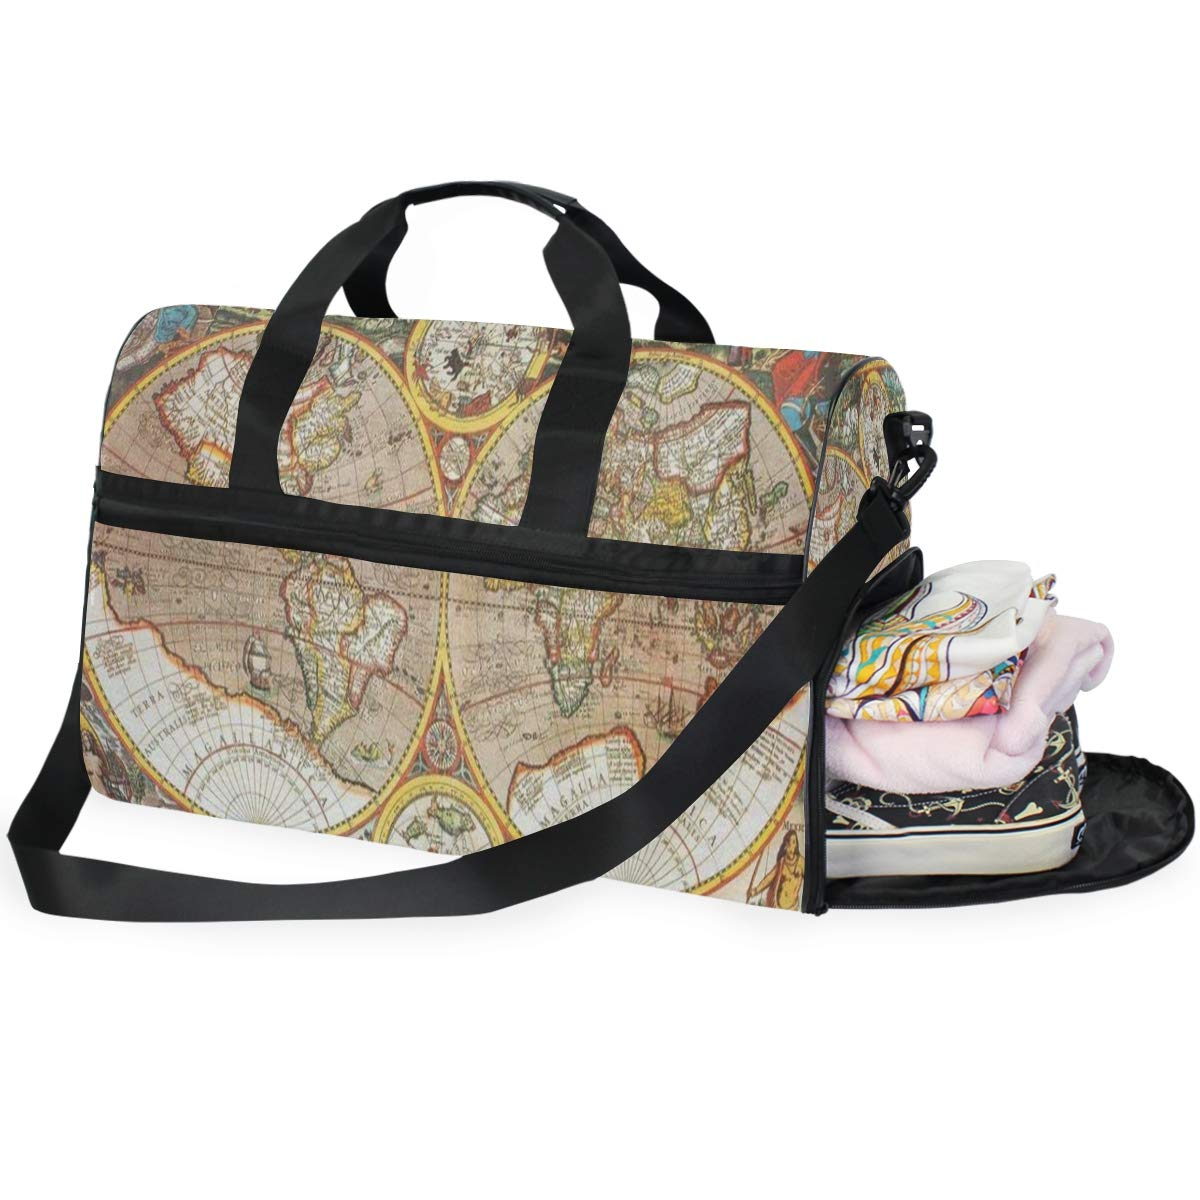 Travel Tote Luggage Weekender Duffle Bag Antique World Map Large Canvas shoulder bag with Shoe Compartment